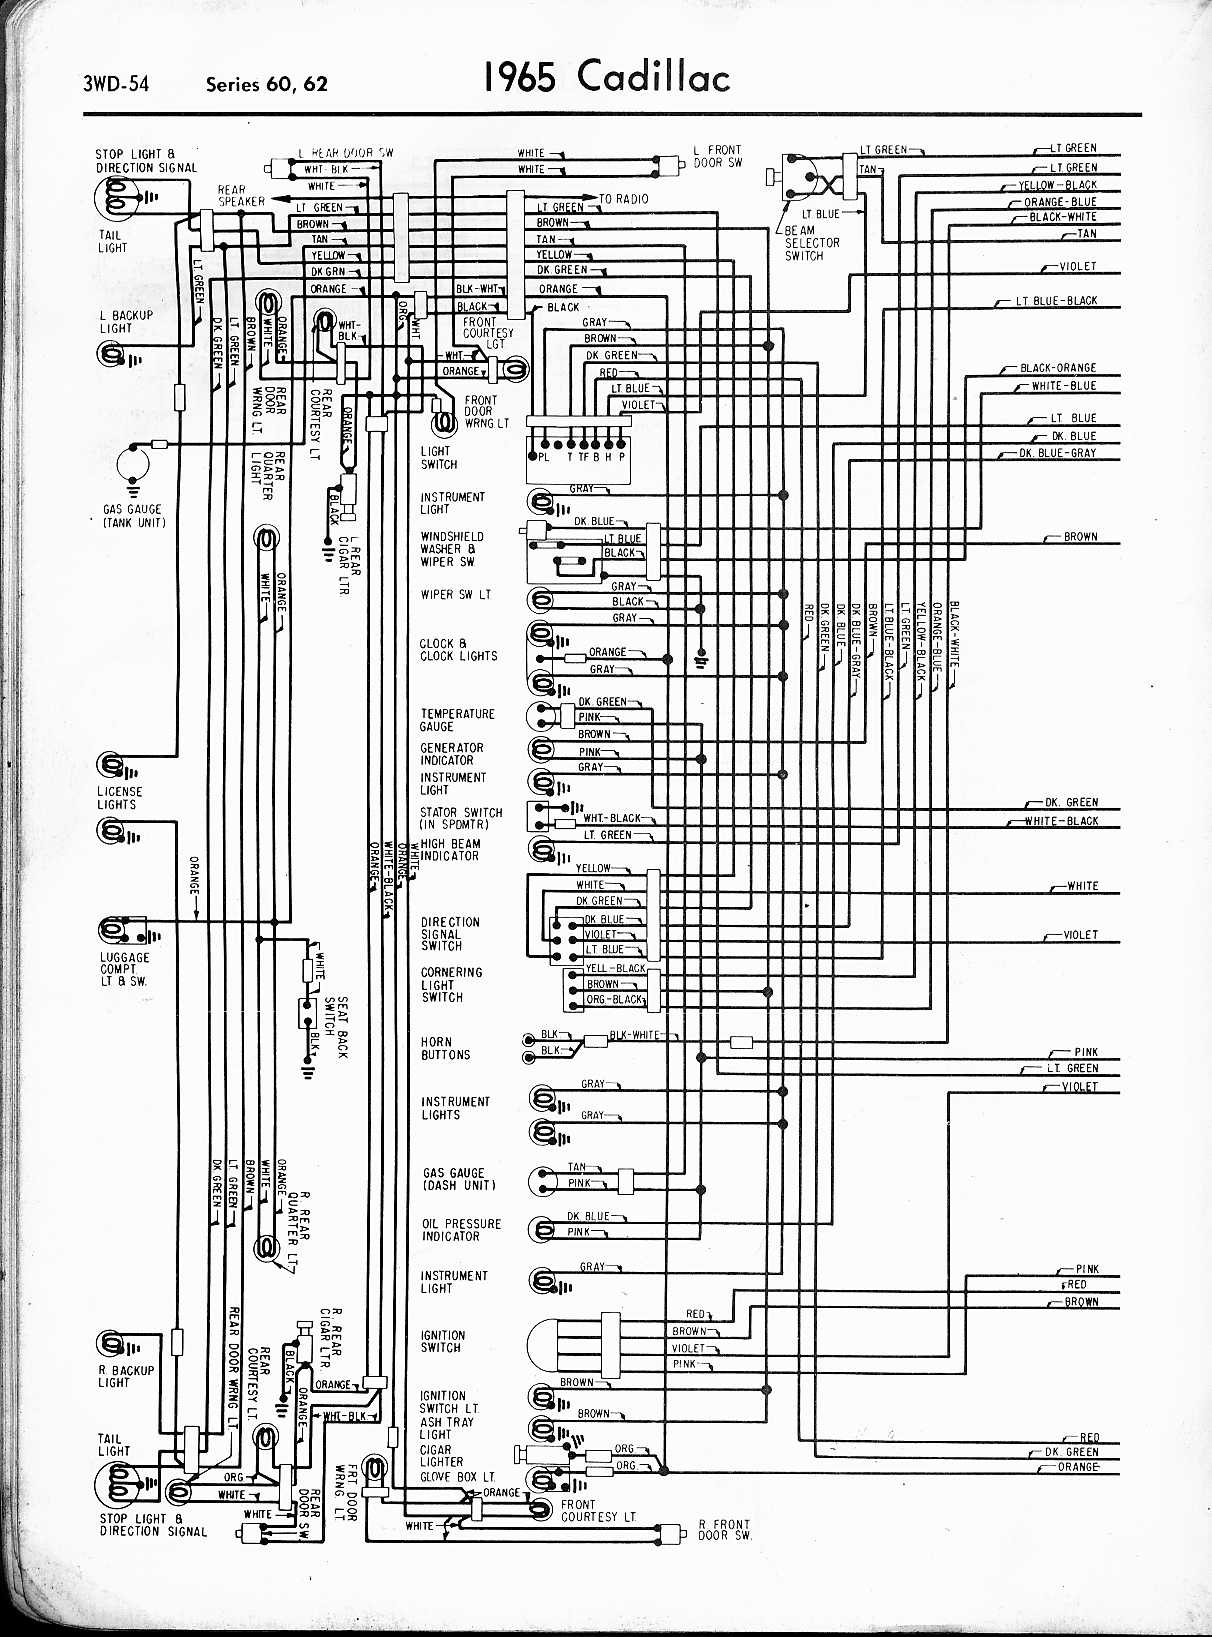 1966 cadillac window wiring diagram explore schematic wiring diagram u2022 rh appkhi com